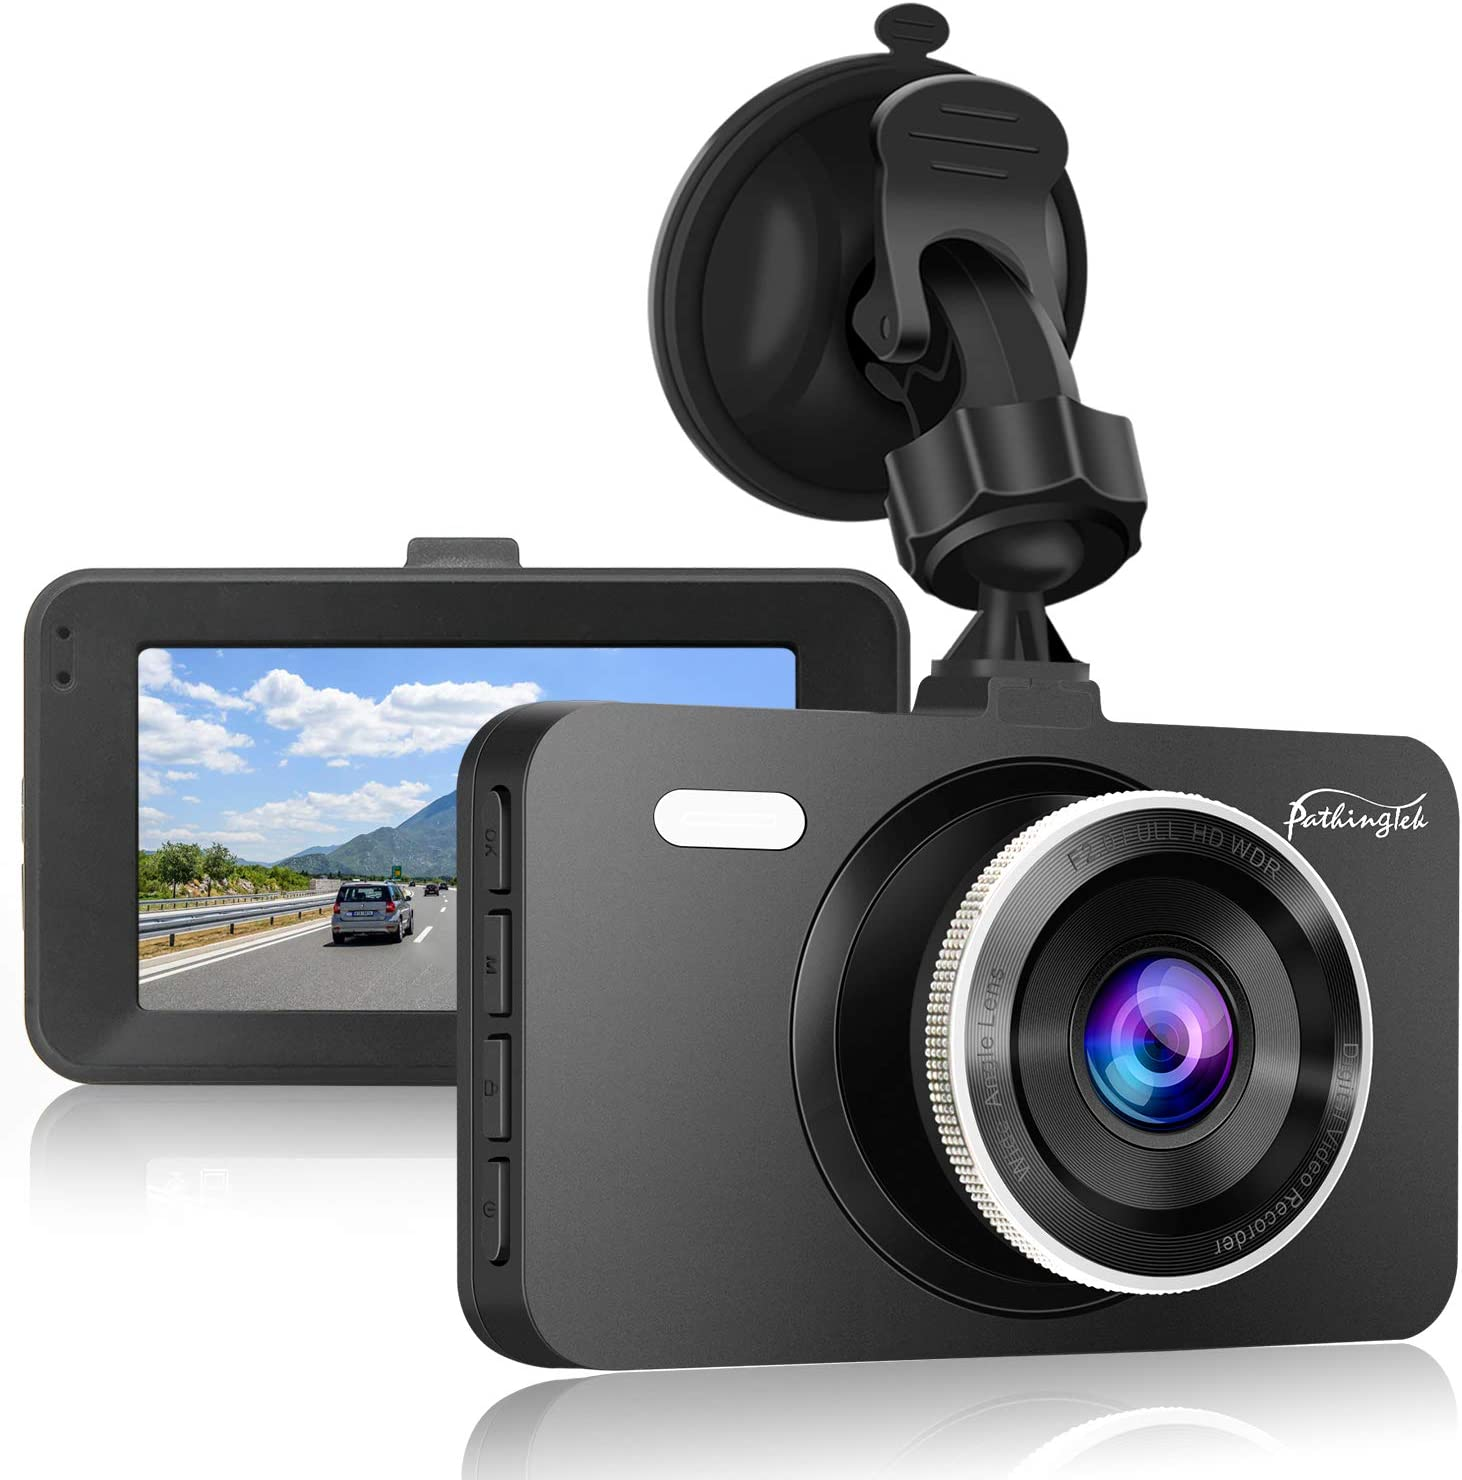 Mini Dash Cam,1080P Full HD Dashboard Video Recorder for Car Camera with Sony Sensor Dash Camera for Cars Enhanced Super Night Vision,170/°Wide Angle,Support 128GB Memory Card